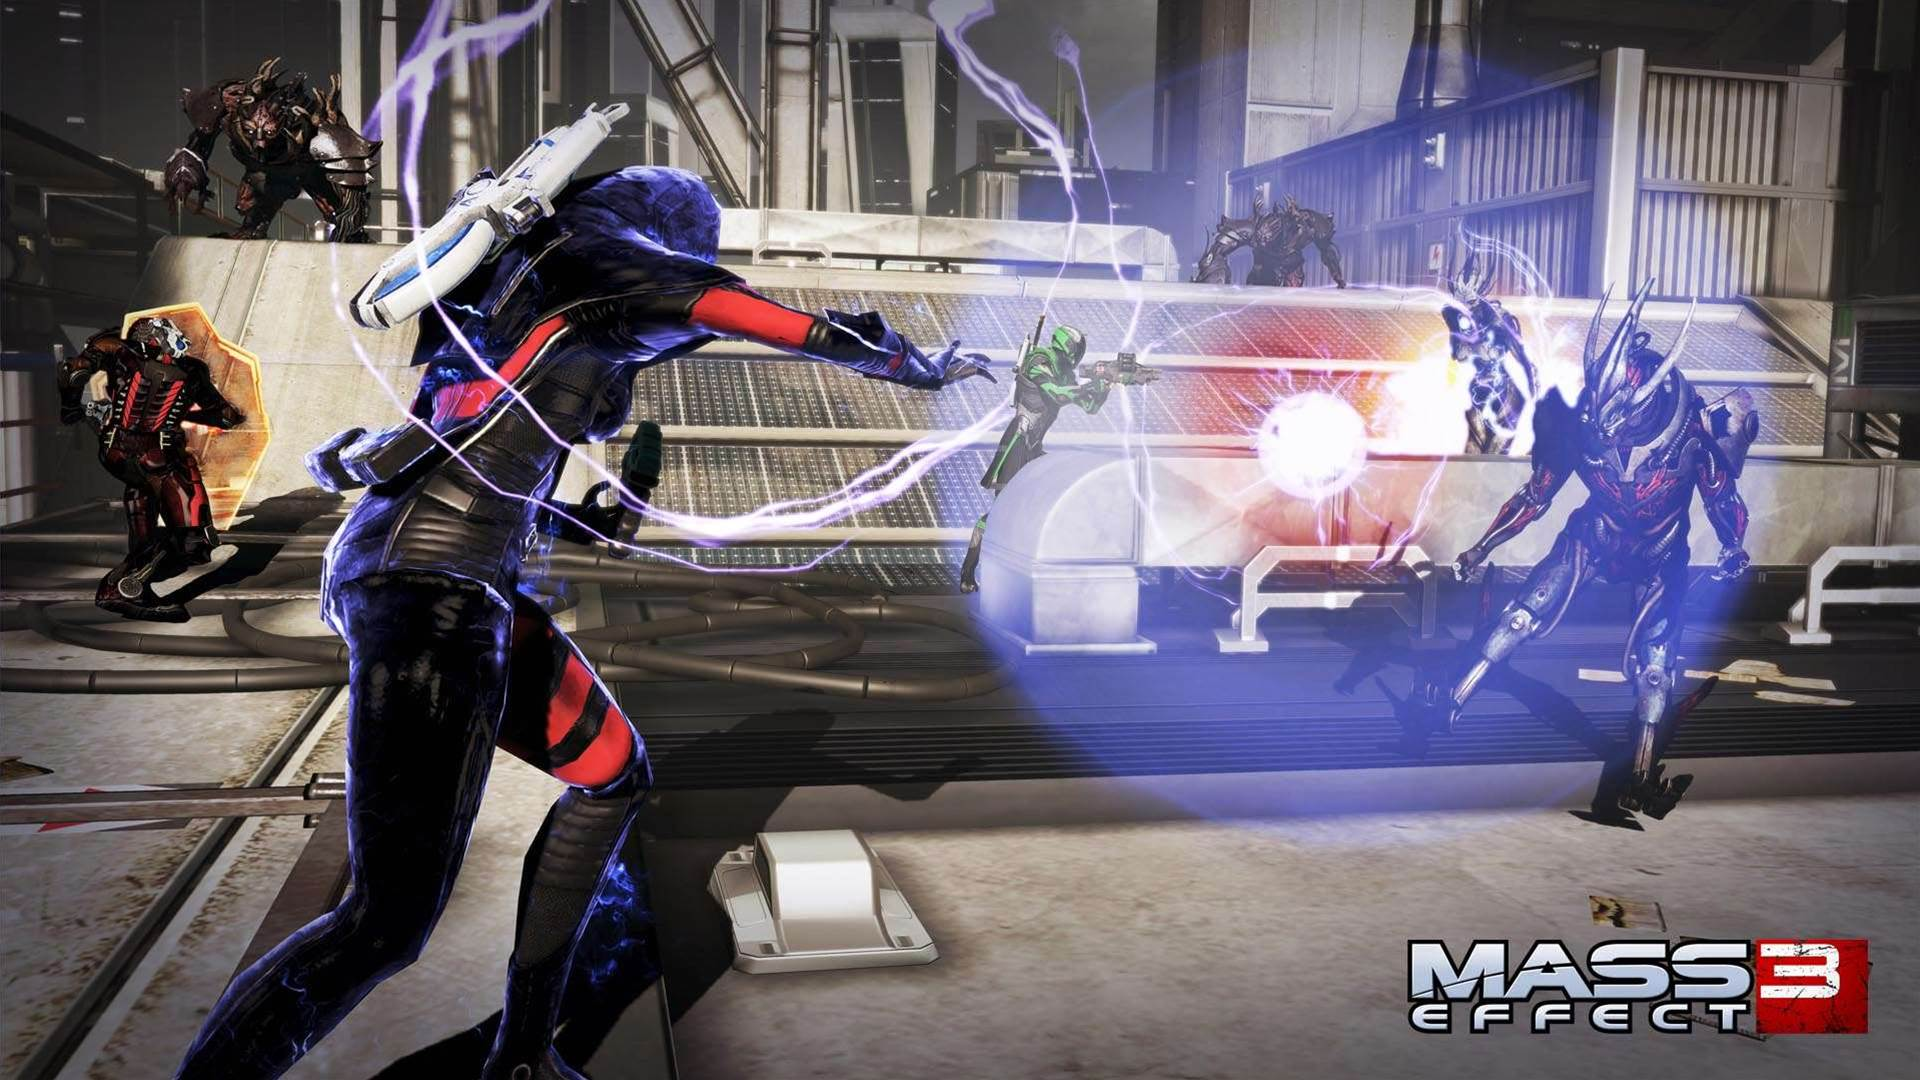 Mass Effect 3: Earth screens